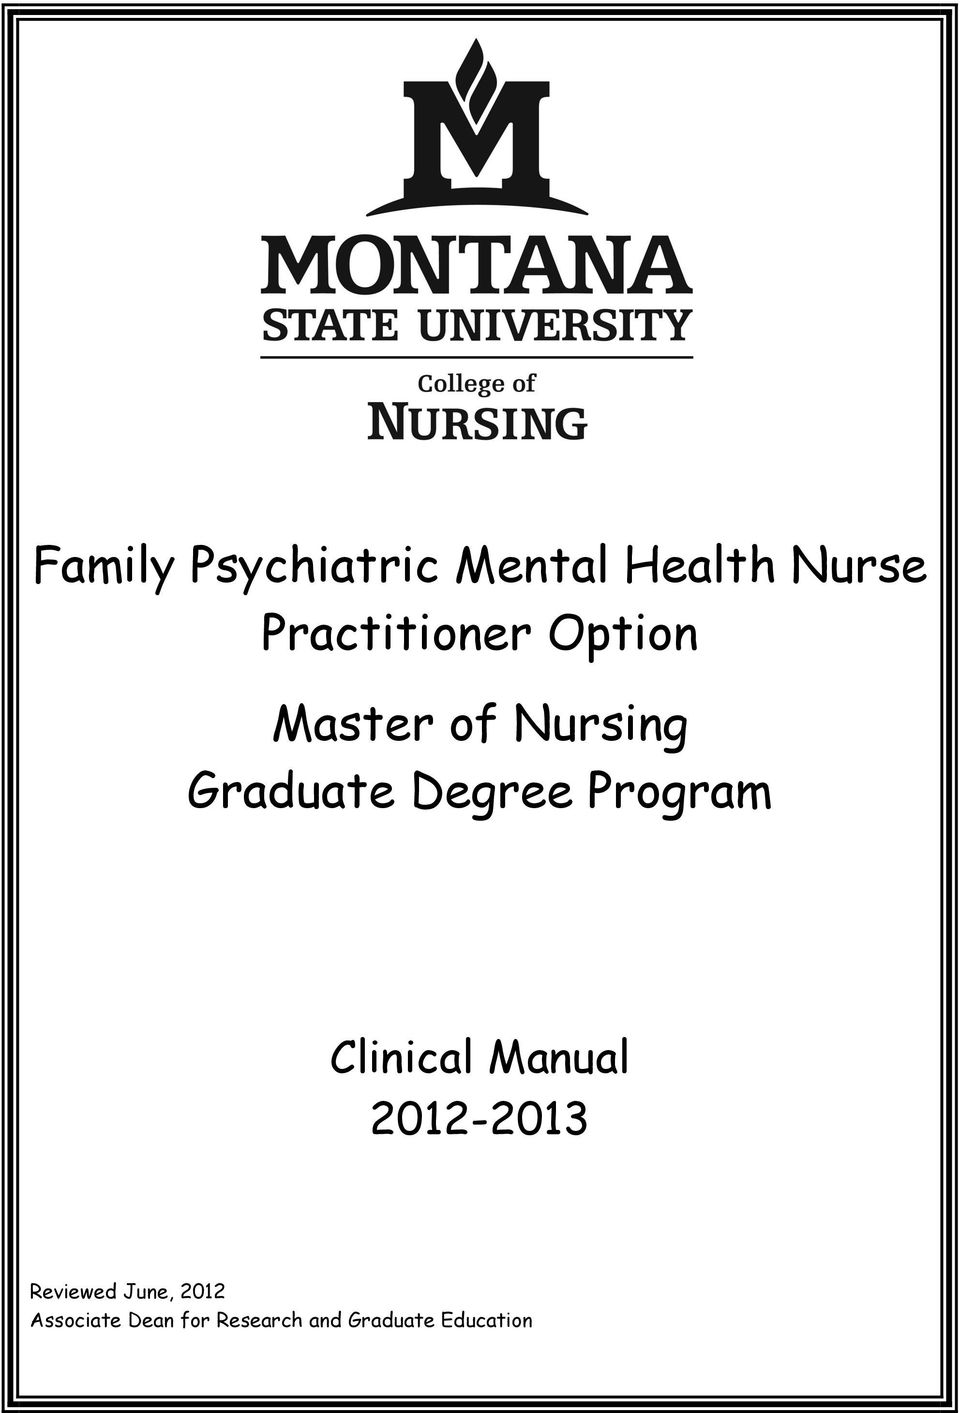 Degree Program Clinical Manual 2012-2013 Reviewed